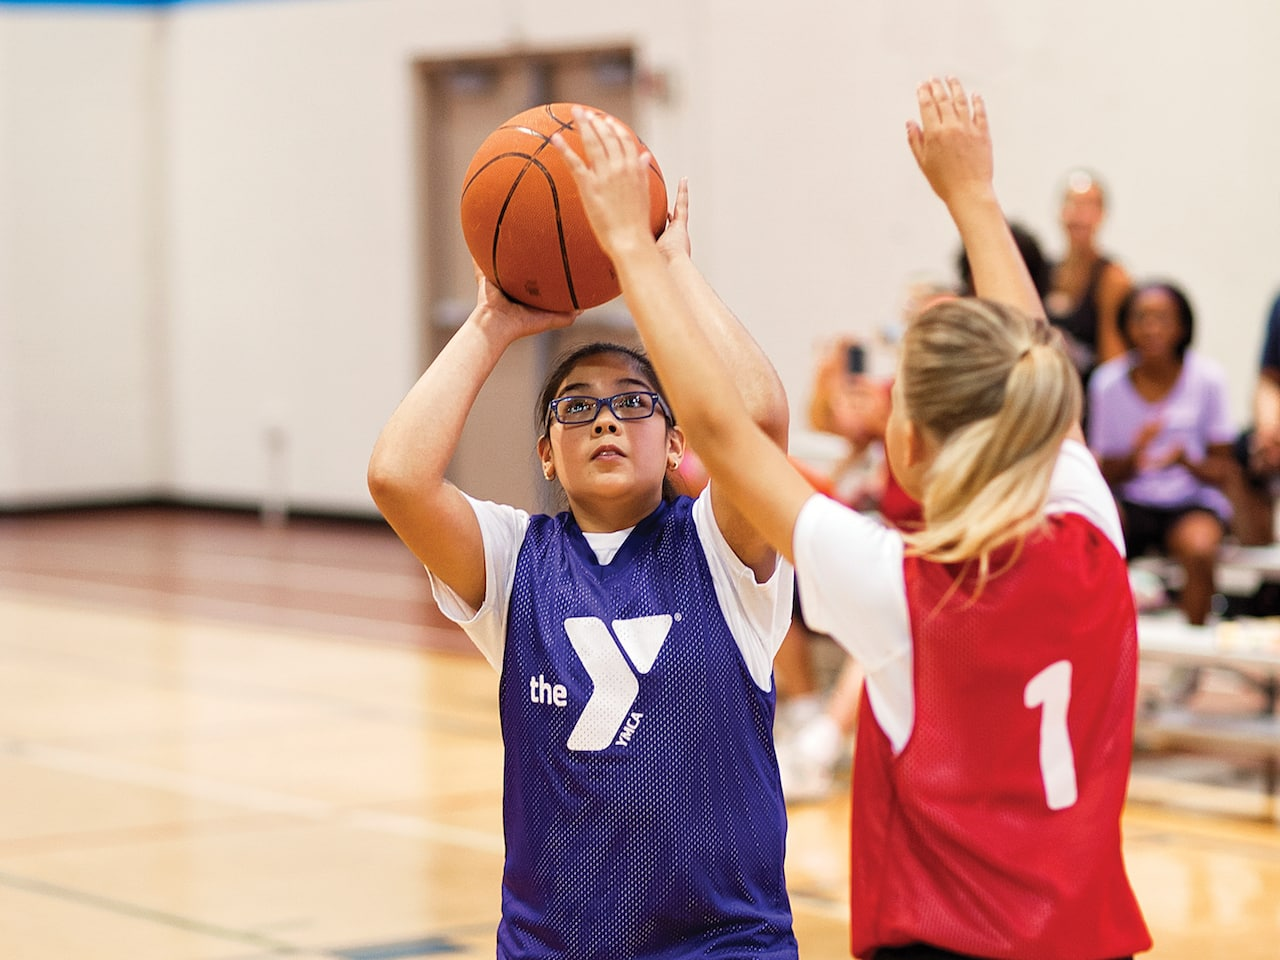 A young girl shooting around a defender trying to block her shot.